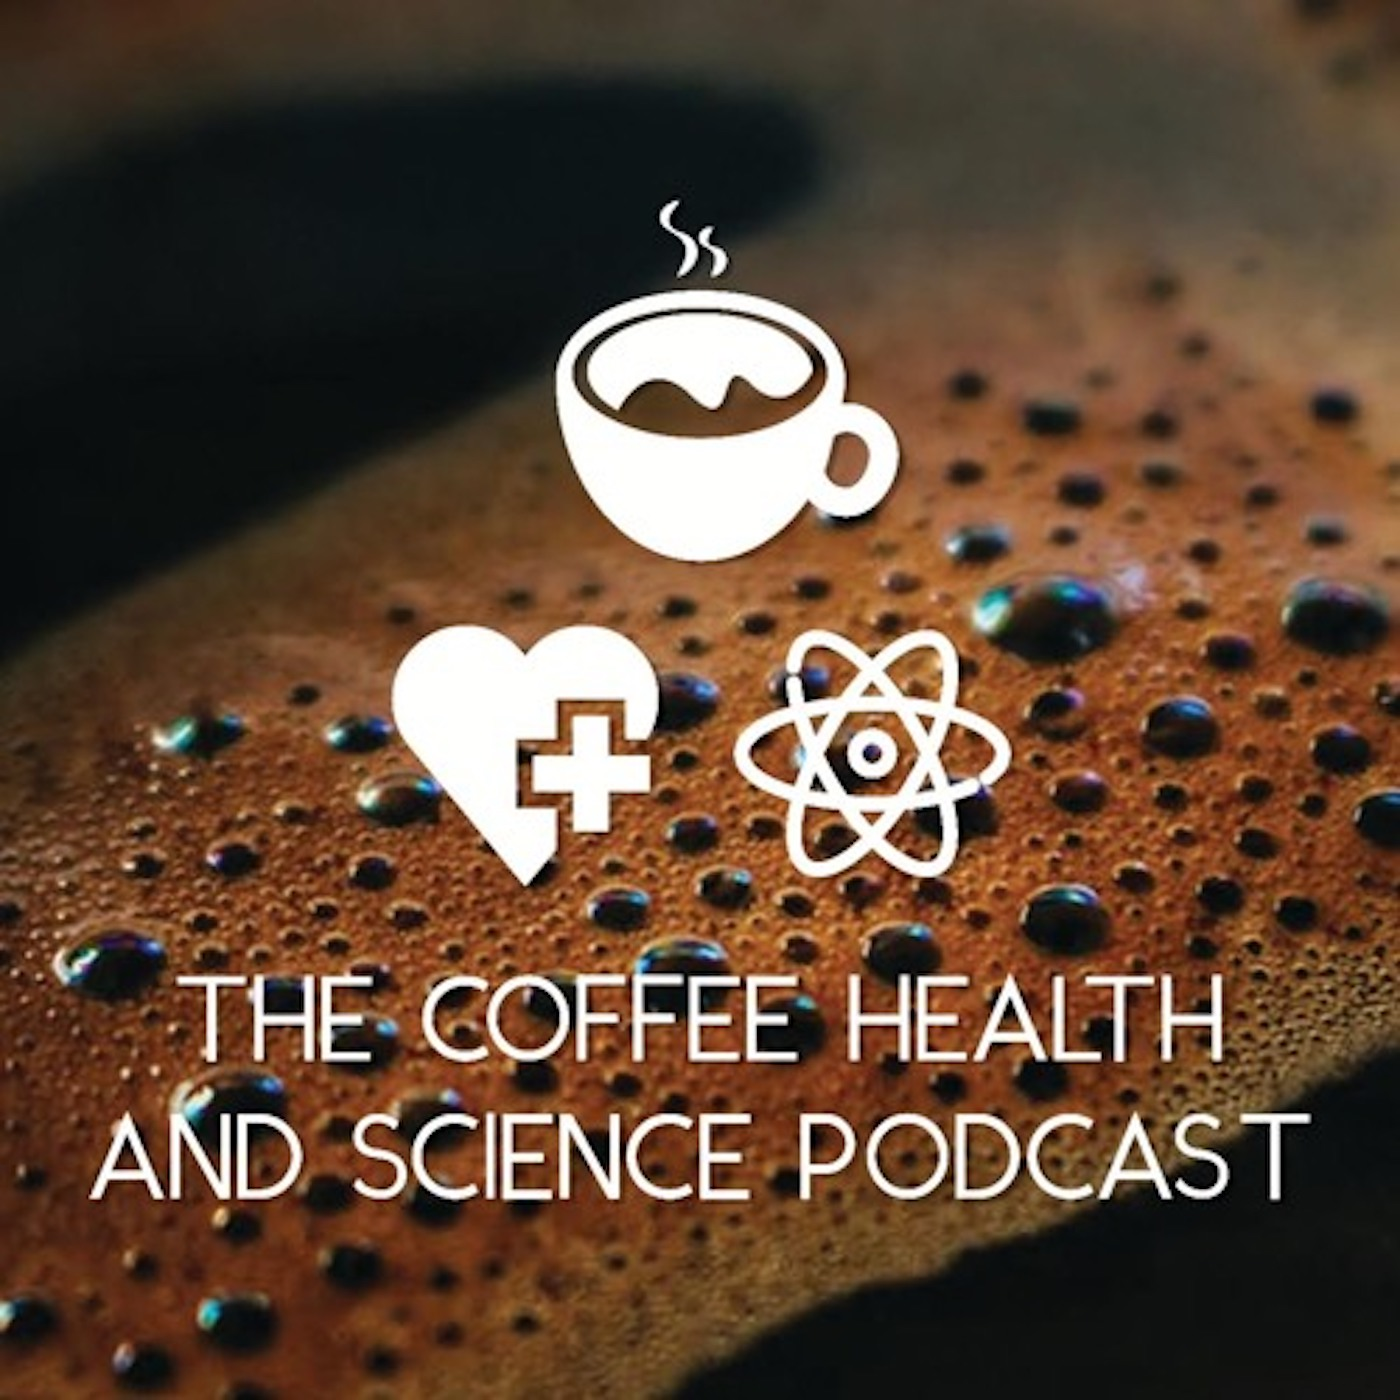 Anti Aging Effects of Coffee, Antioxidants, Longevity and More, with Dr. Coffee